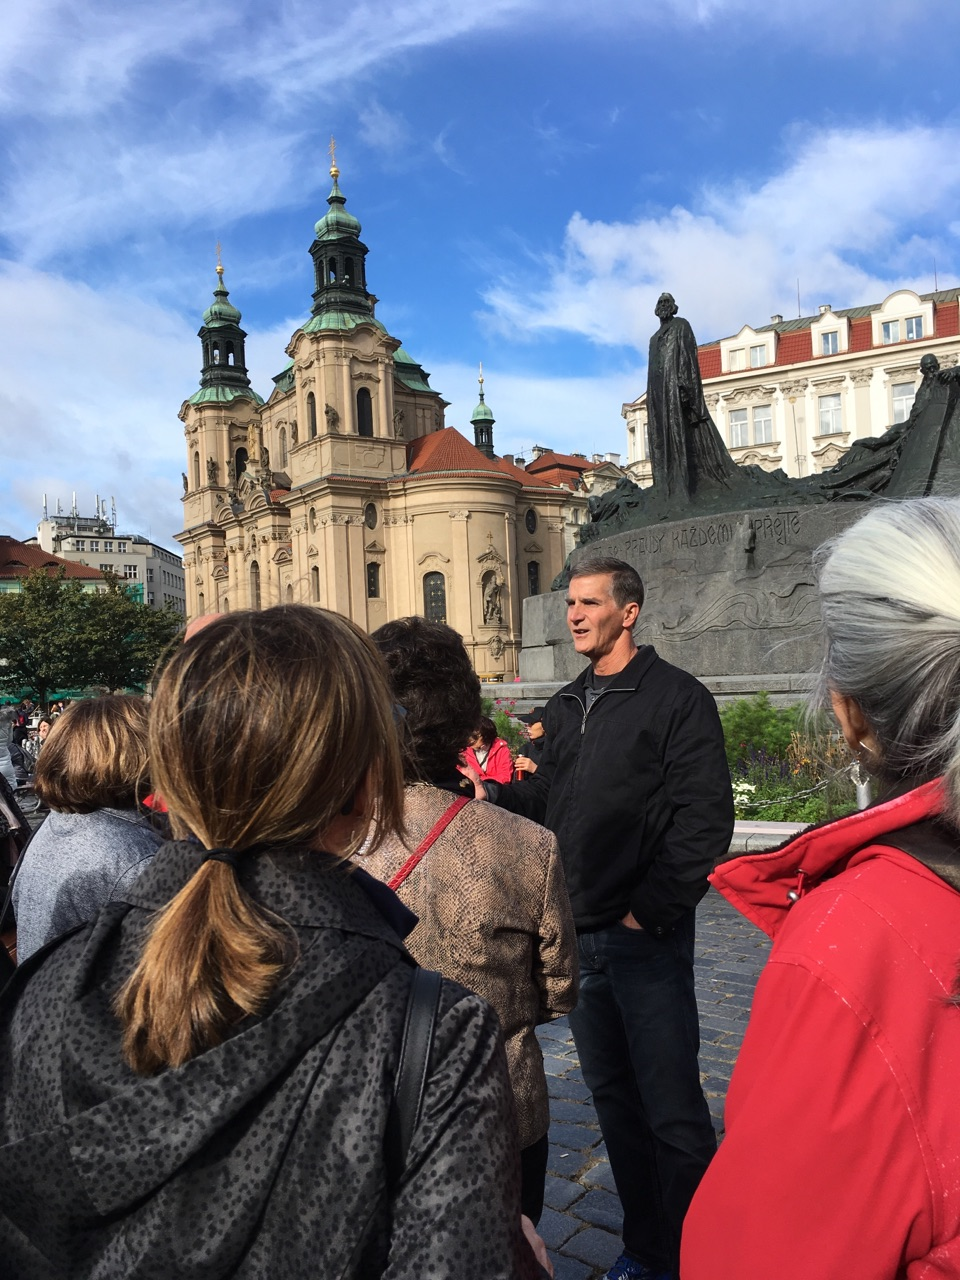 Talking about the life of John Huss in front of the Huss Monument in Prague. Pictures below from Bethlehem Chapel just a short distance from the monument.